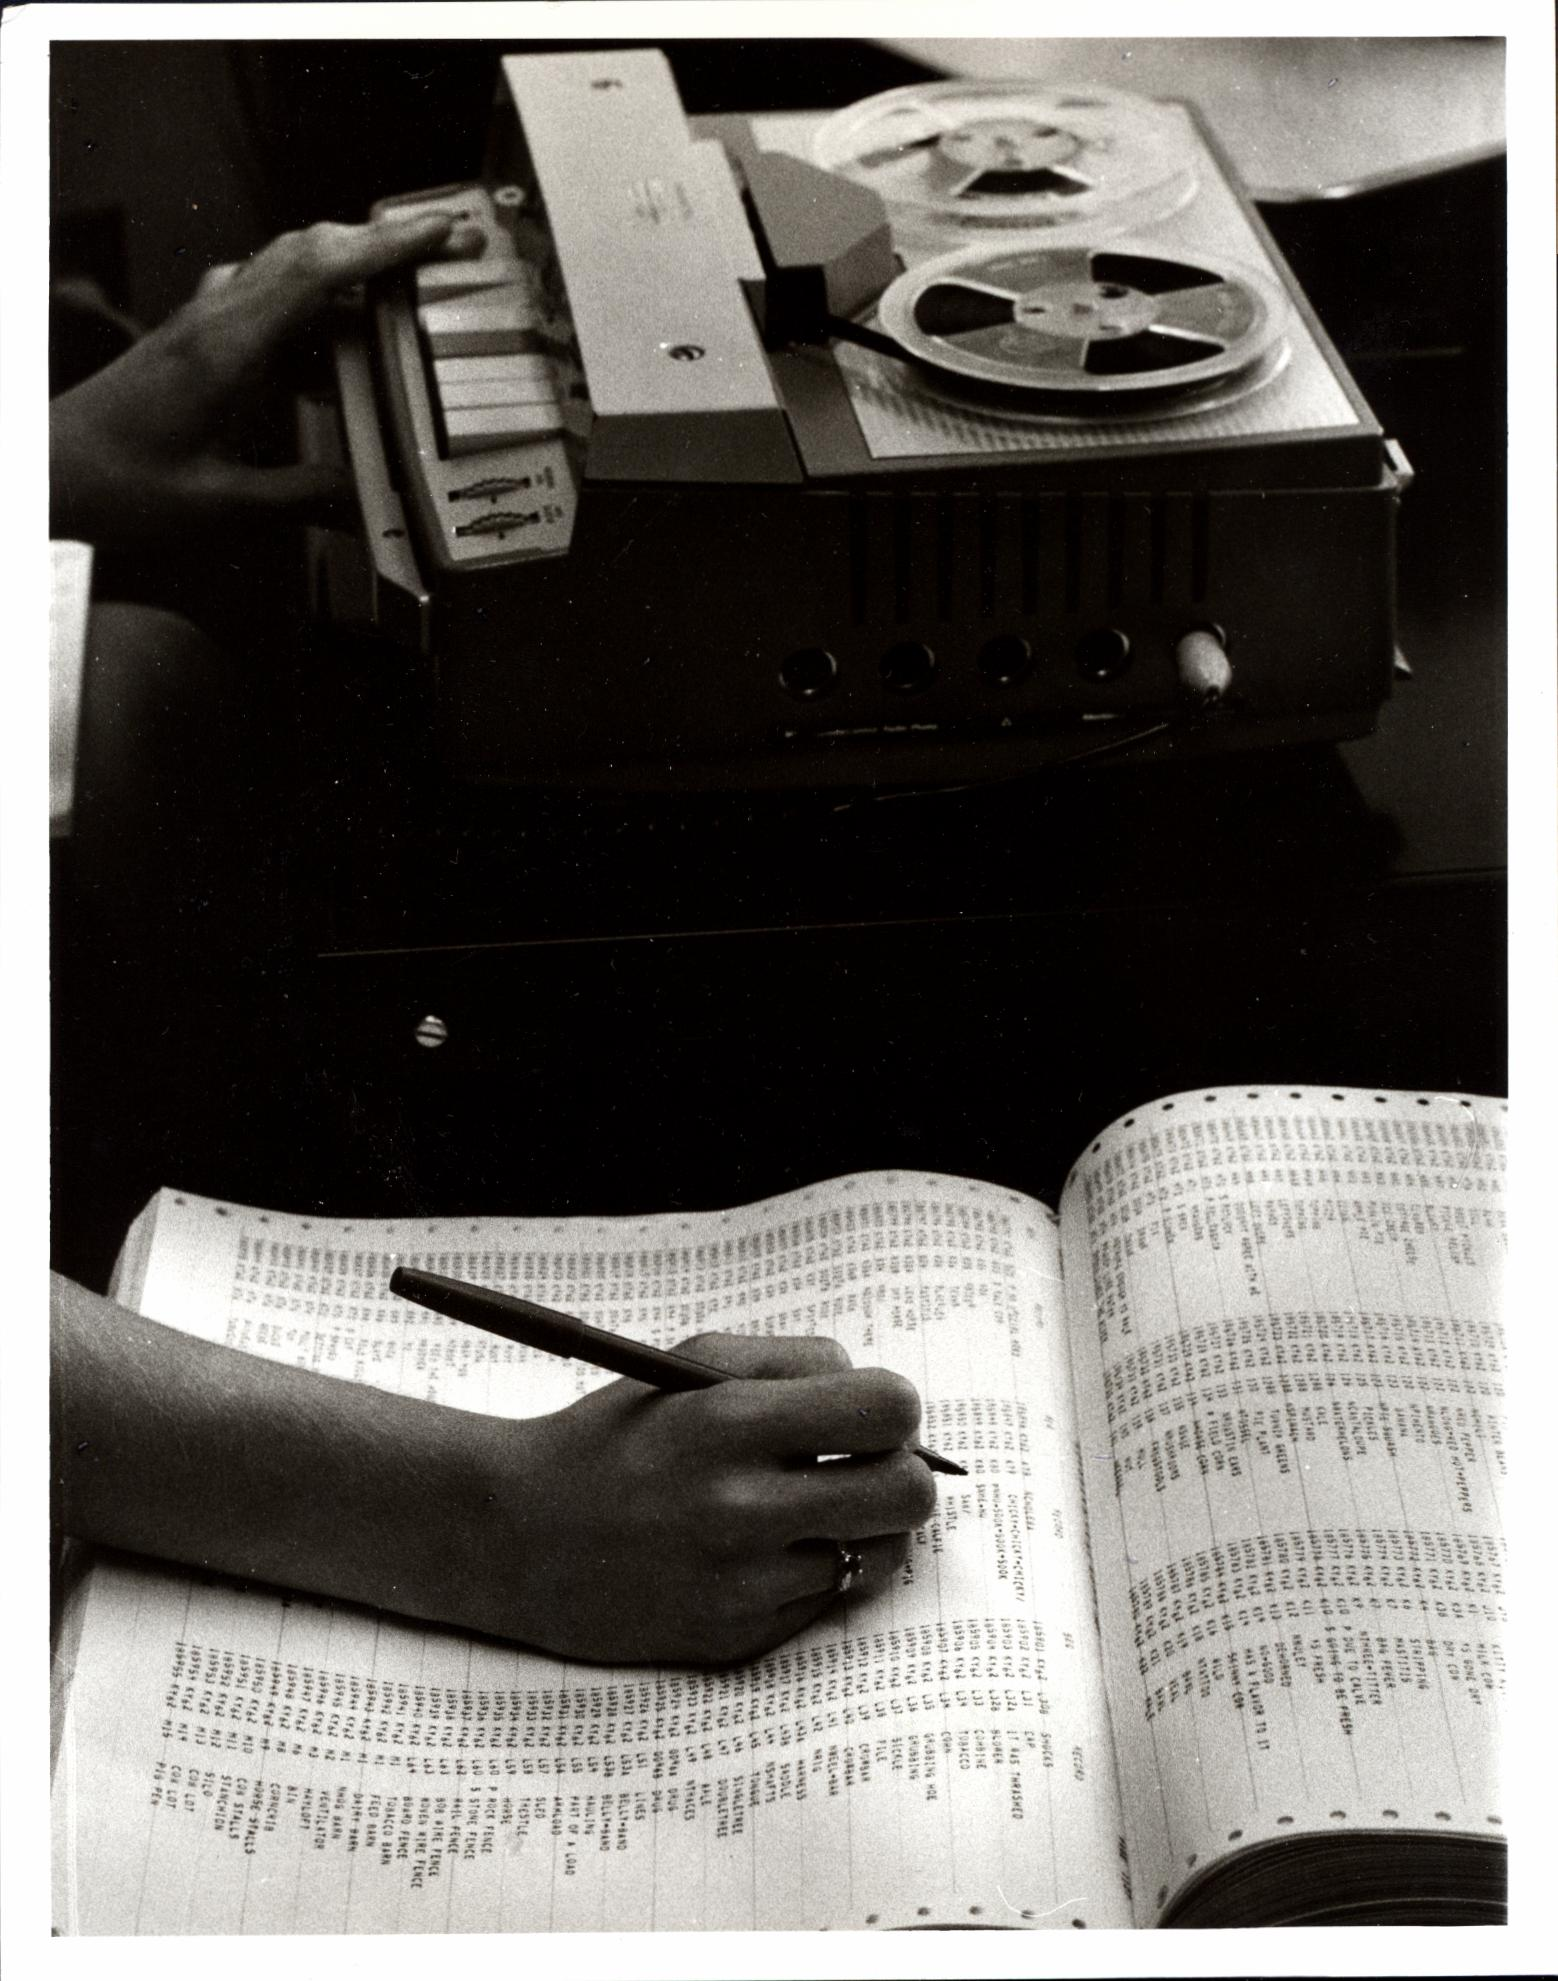 Tape recorder and Computer printout (c1972)